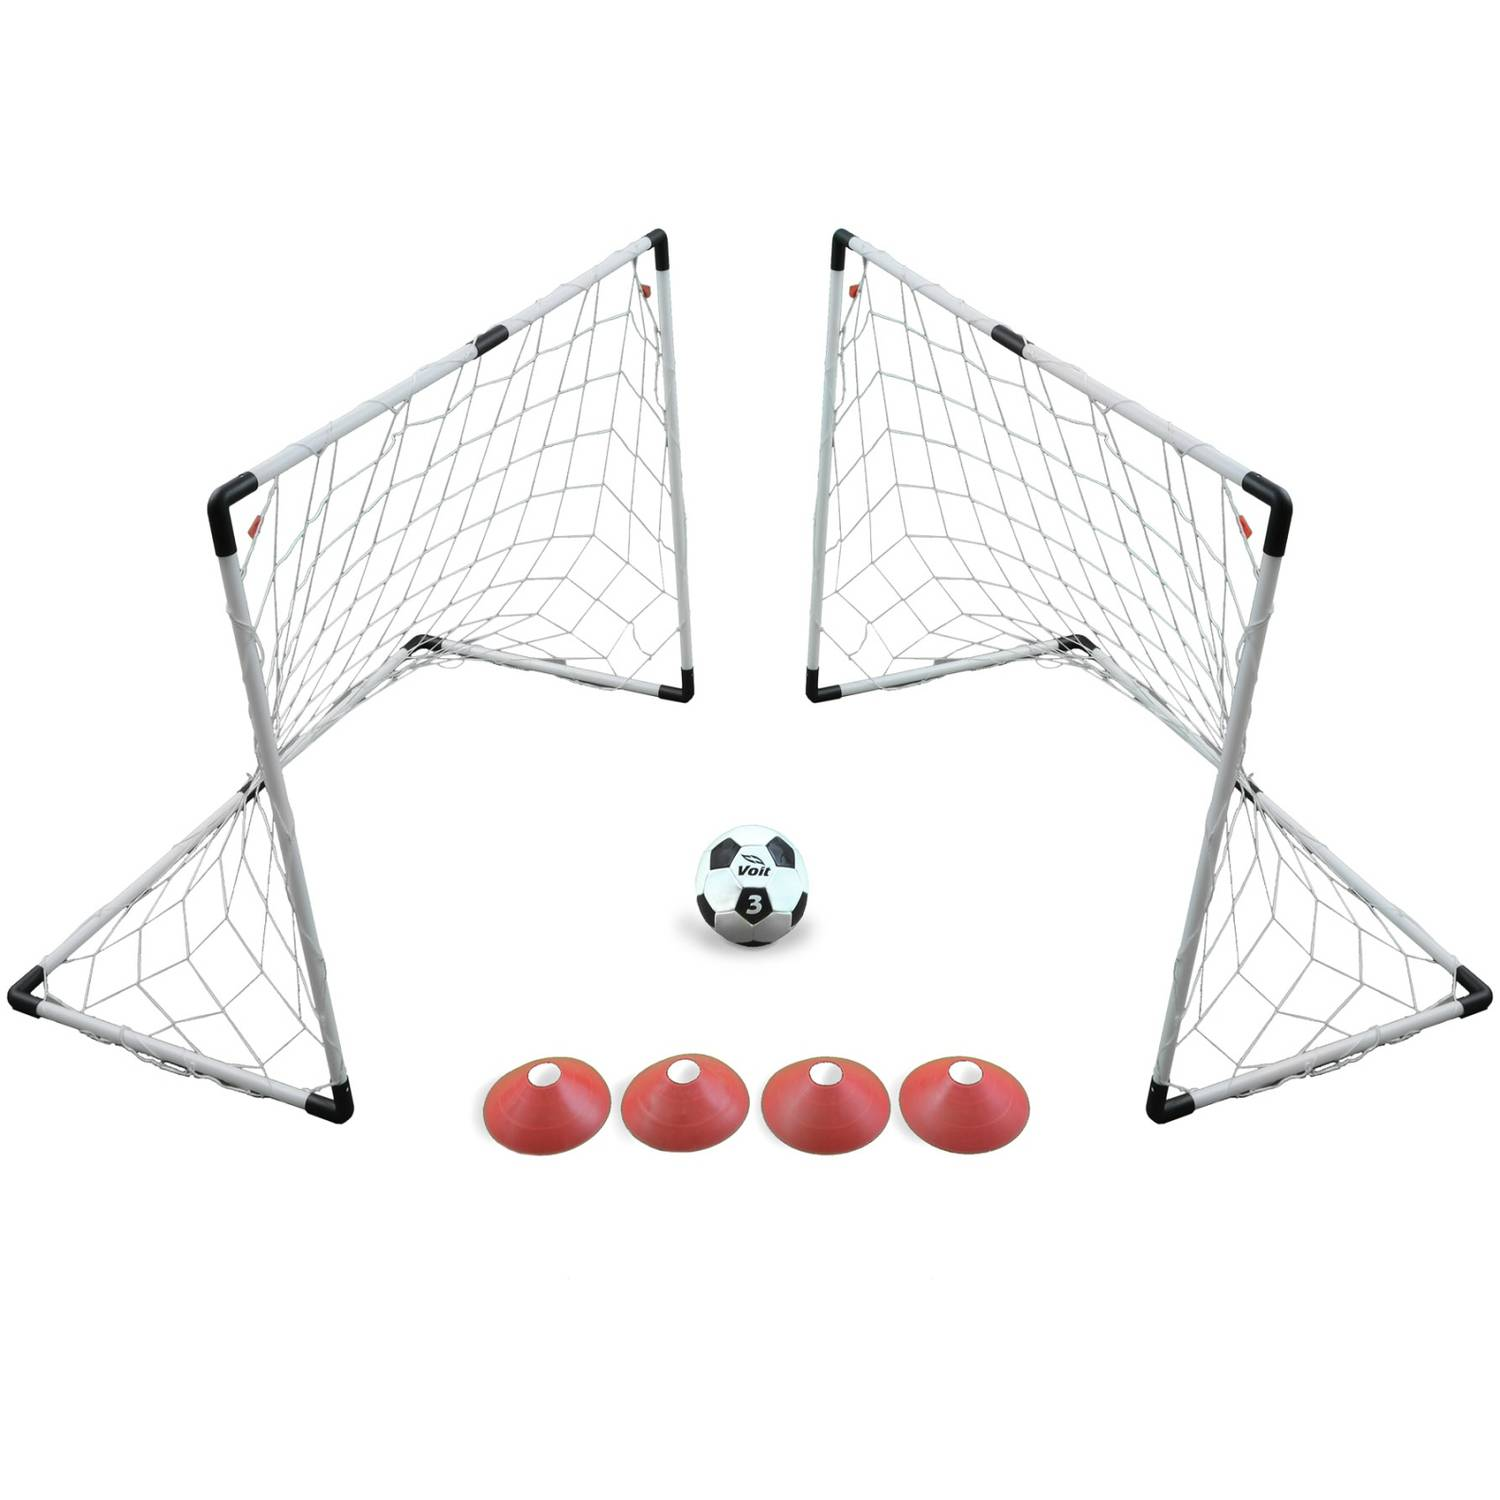 Voit 2 Goal 4' x 3' Soccer Game Set